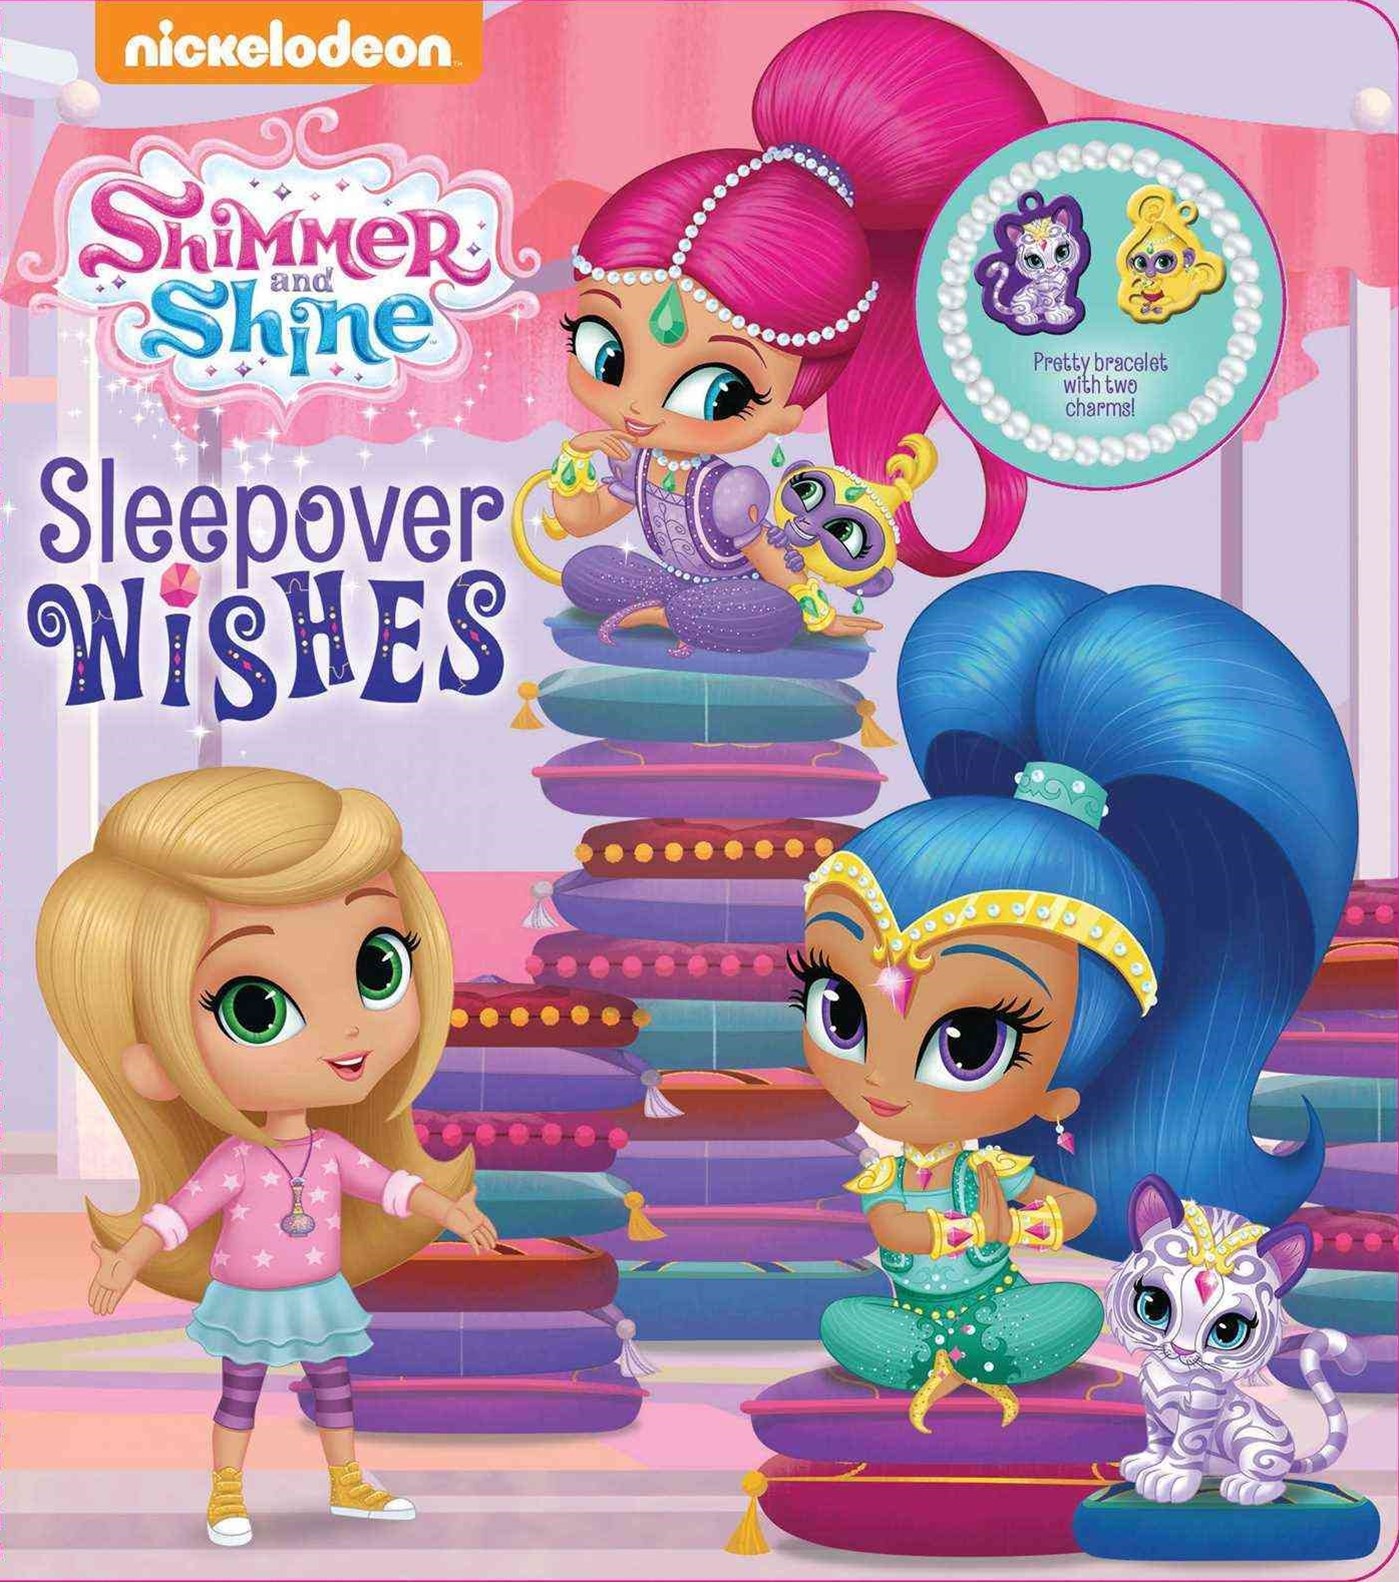 Shimmer and Shine - Sleepover Wishes